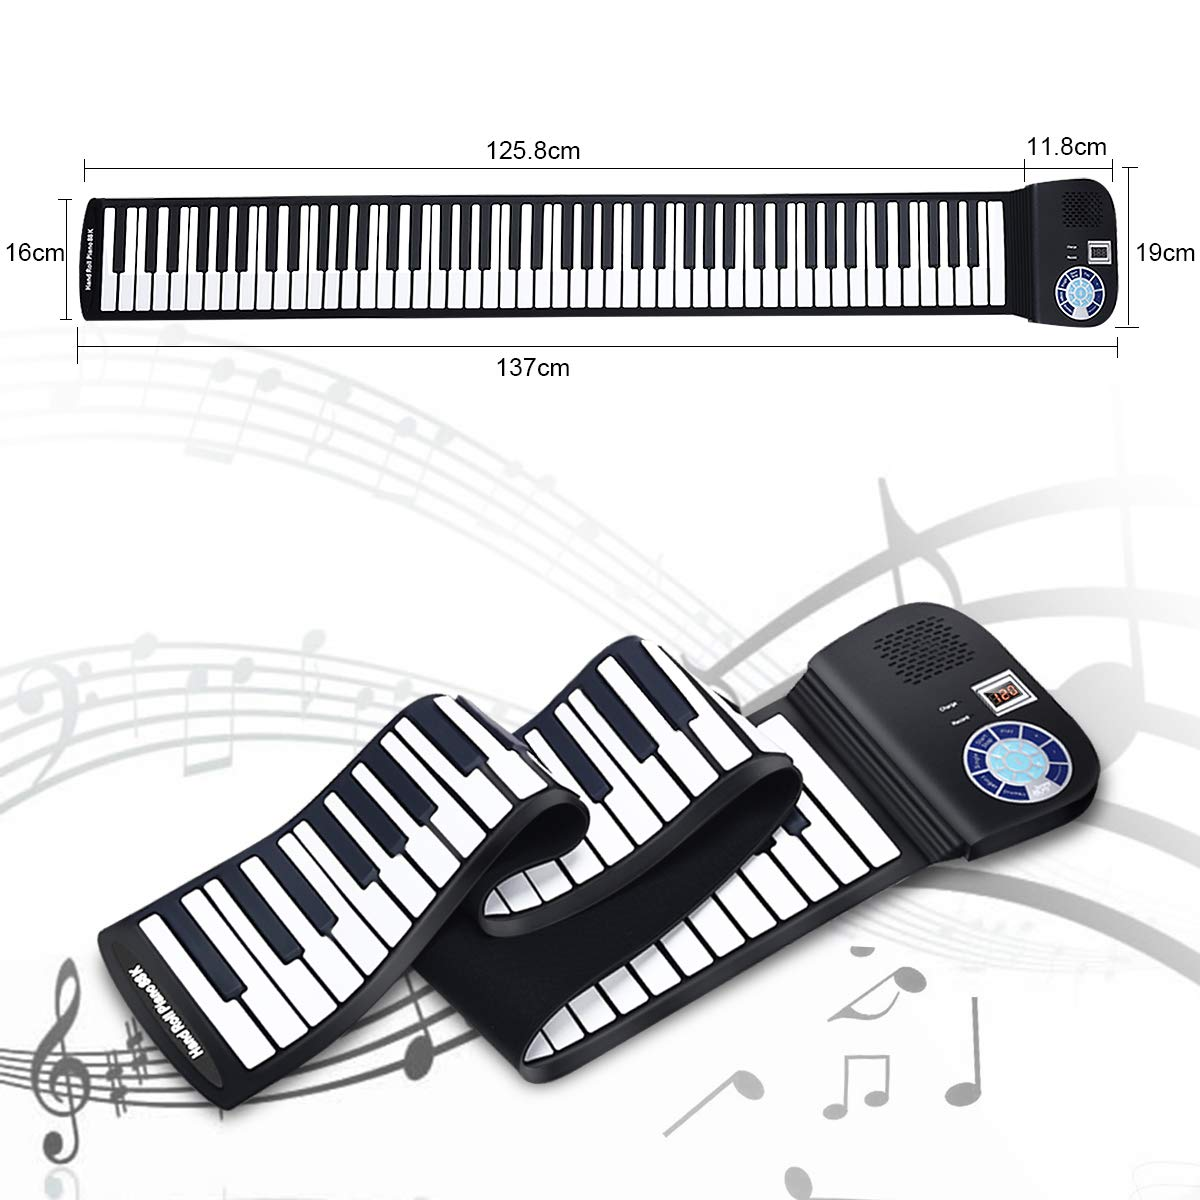 Safeplus Piano Keyboard 88 Keys Touch Sensitive Portable Keyboard with Power Supply by Safeplus